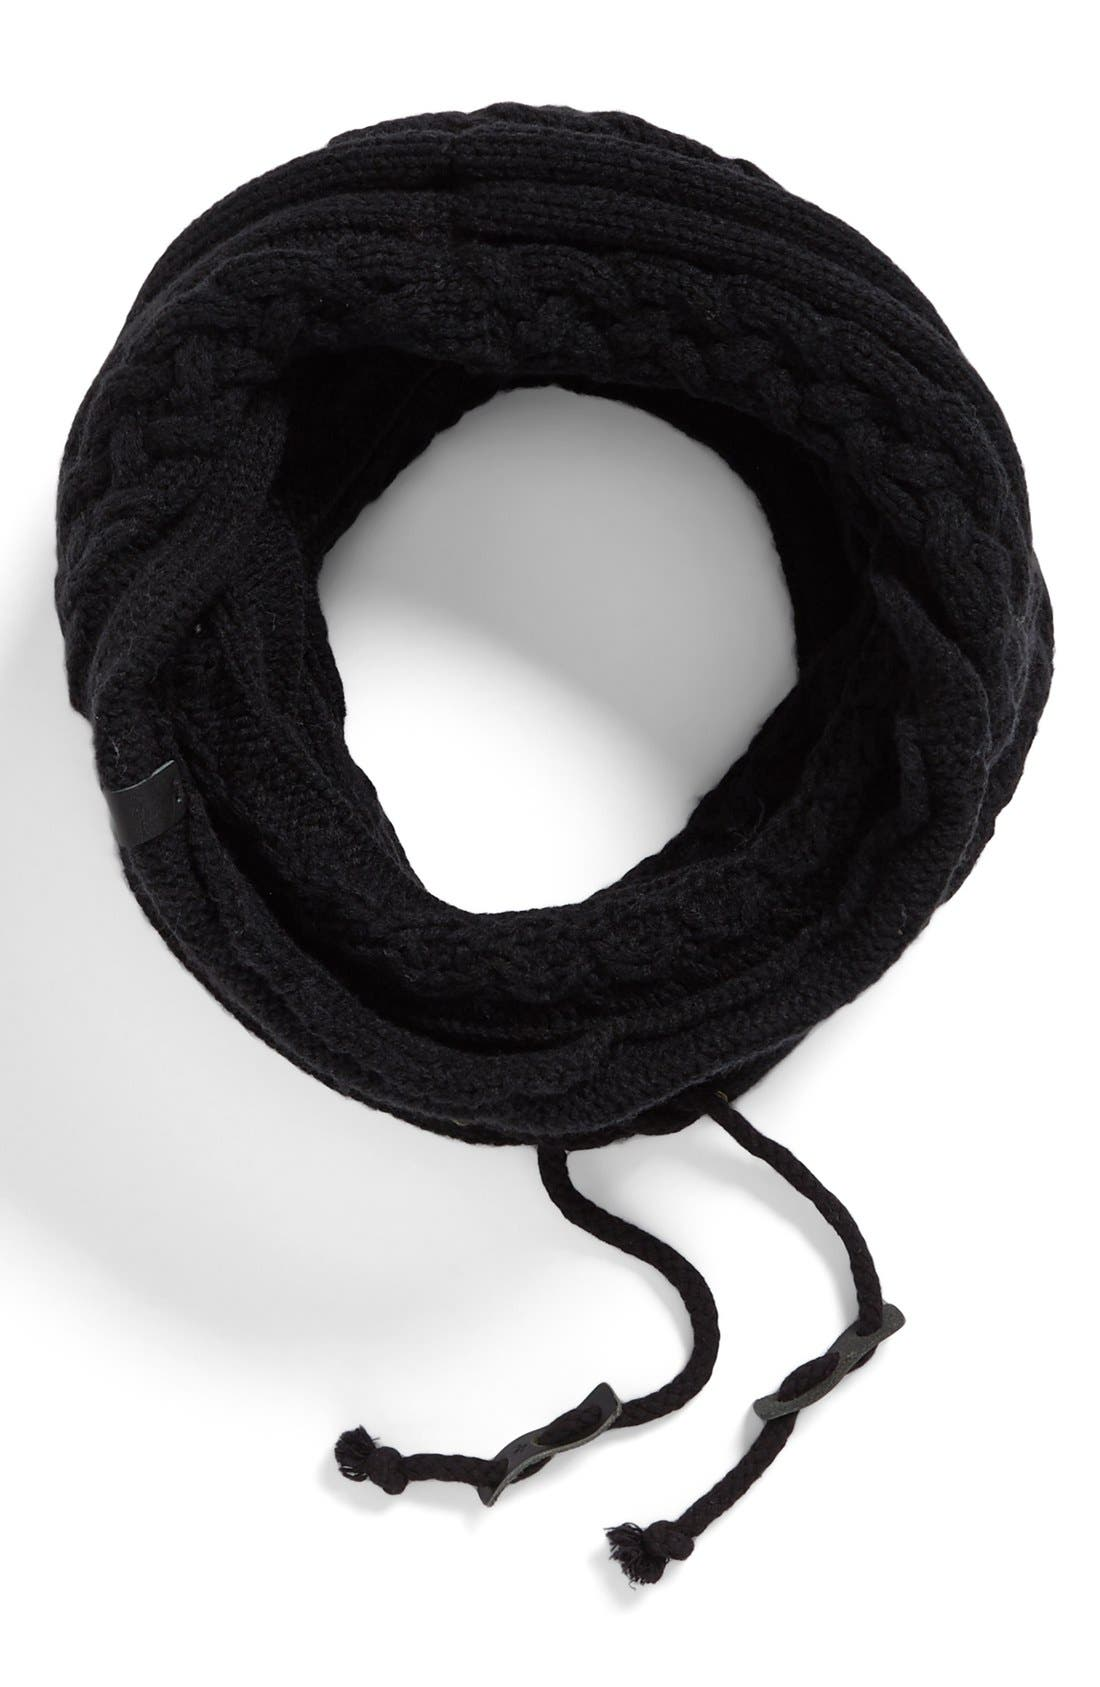 Main Image - Bickley + Mitchell Cable Knit Drawstring Snood